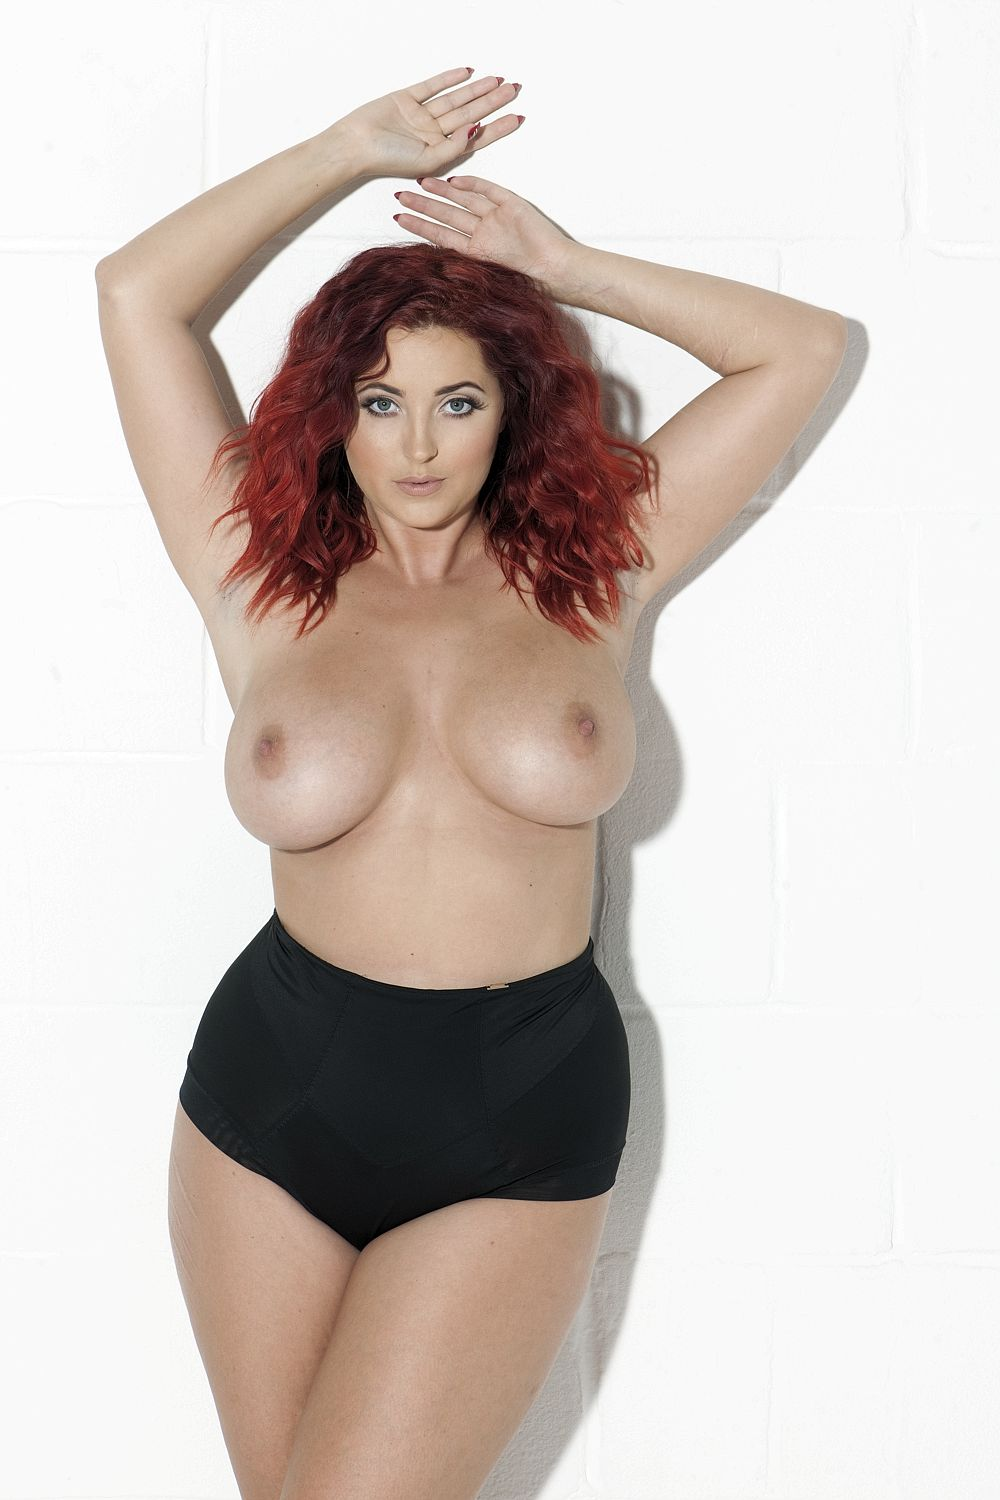 Topless Tracy Dimarco nude photos 2019